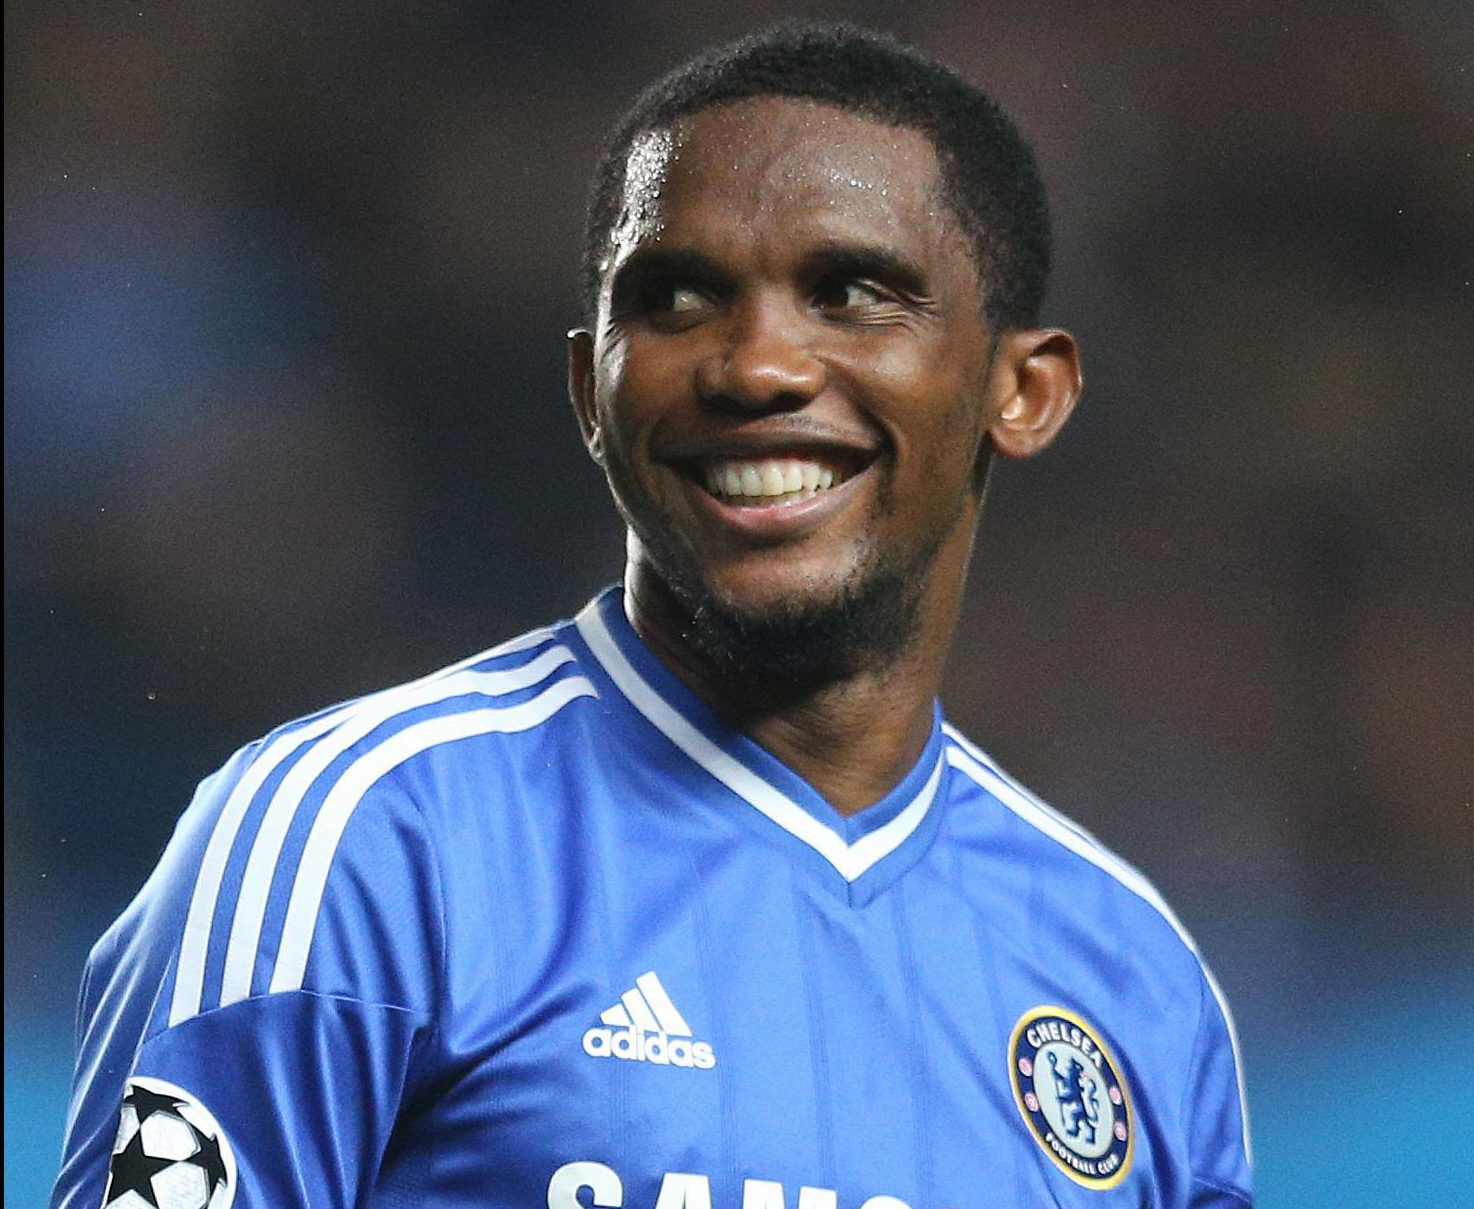 Samuel Eto'o played for some of the most glamorous and successful clubs in the world - and Chelsea